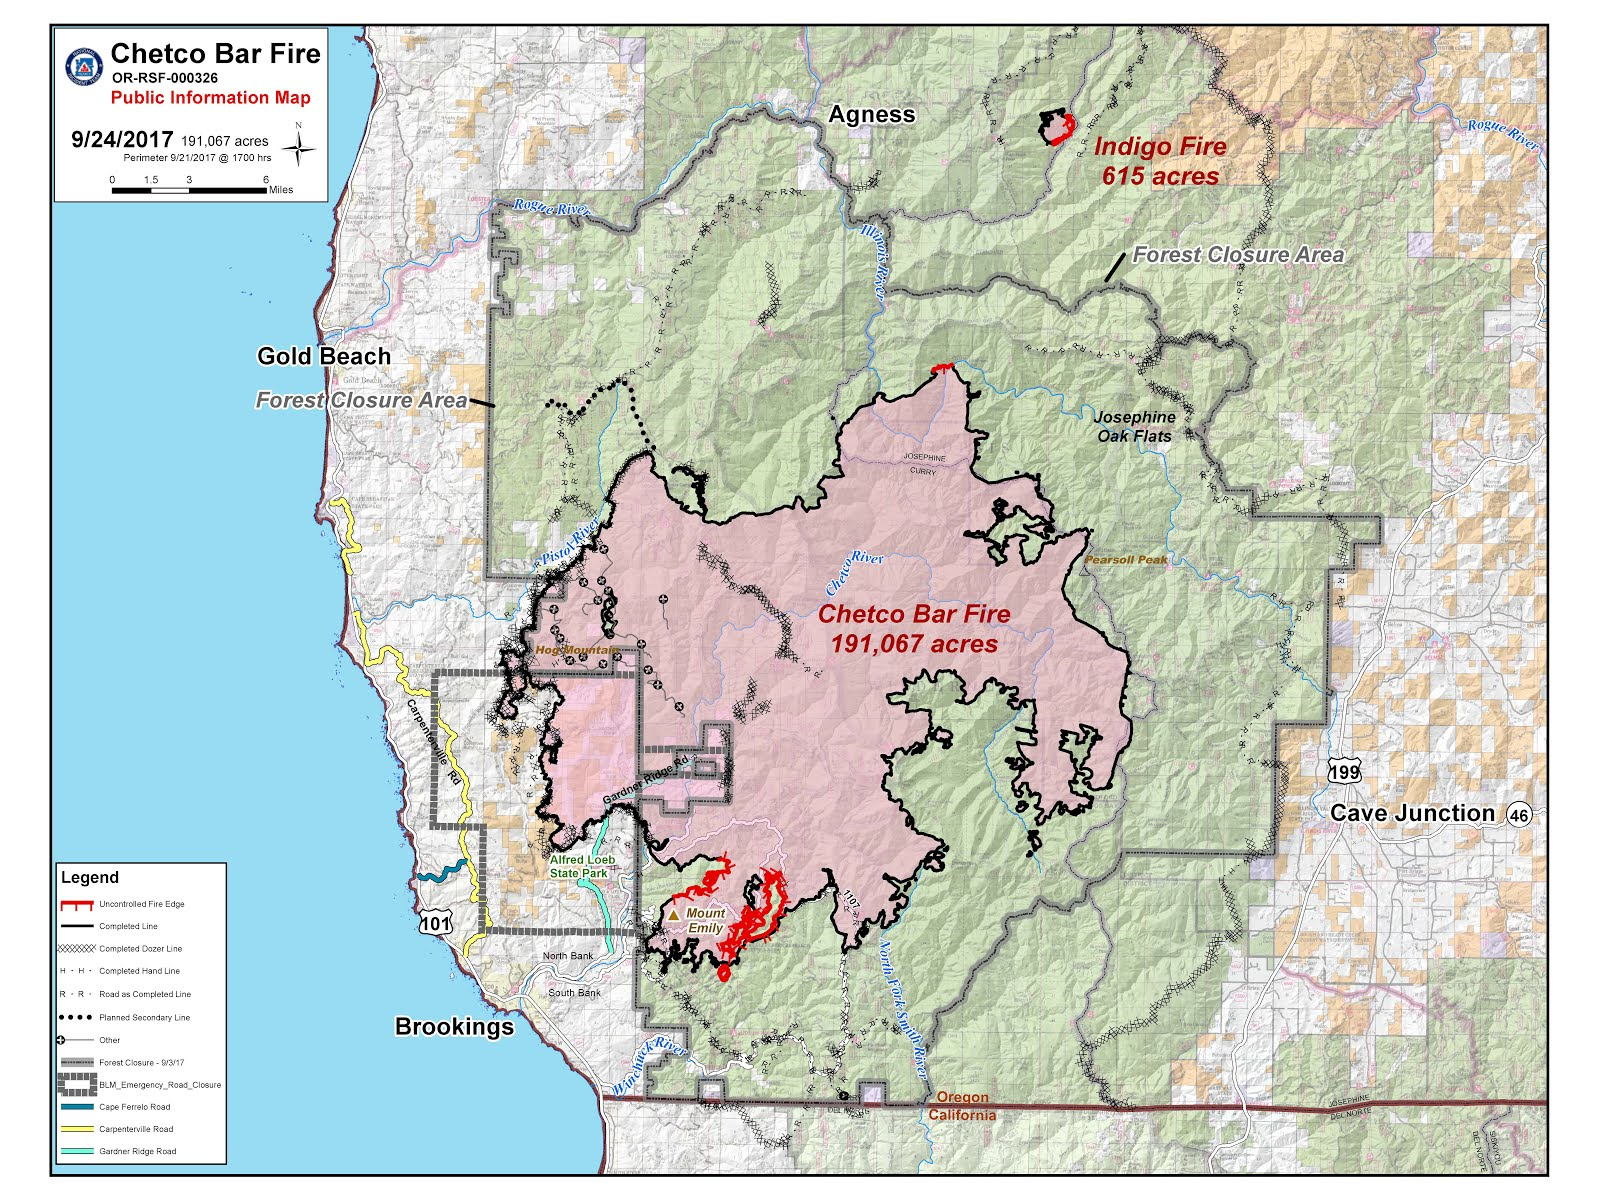 temporary flight restrictions tfr are in effect over the chetco bar fire area pilots are advised to seek more information using the link under online